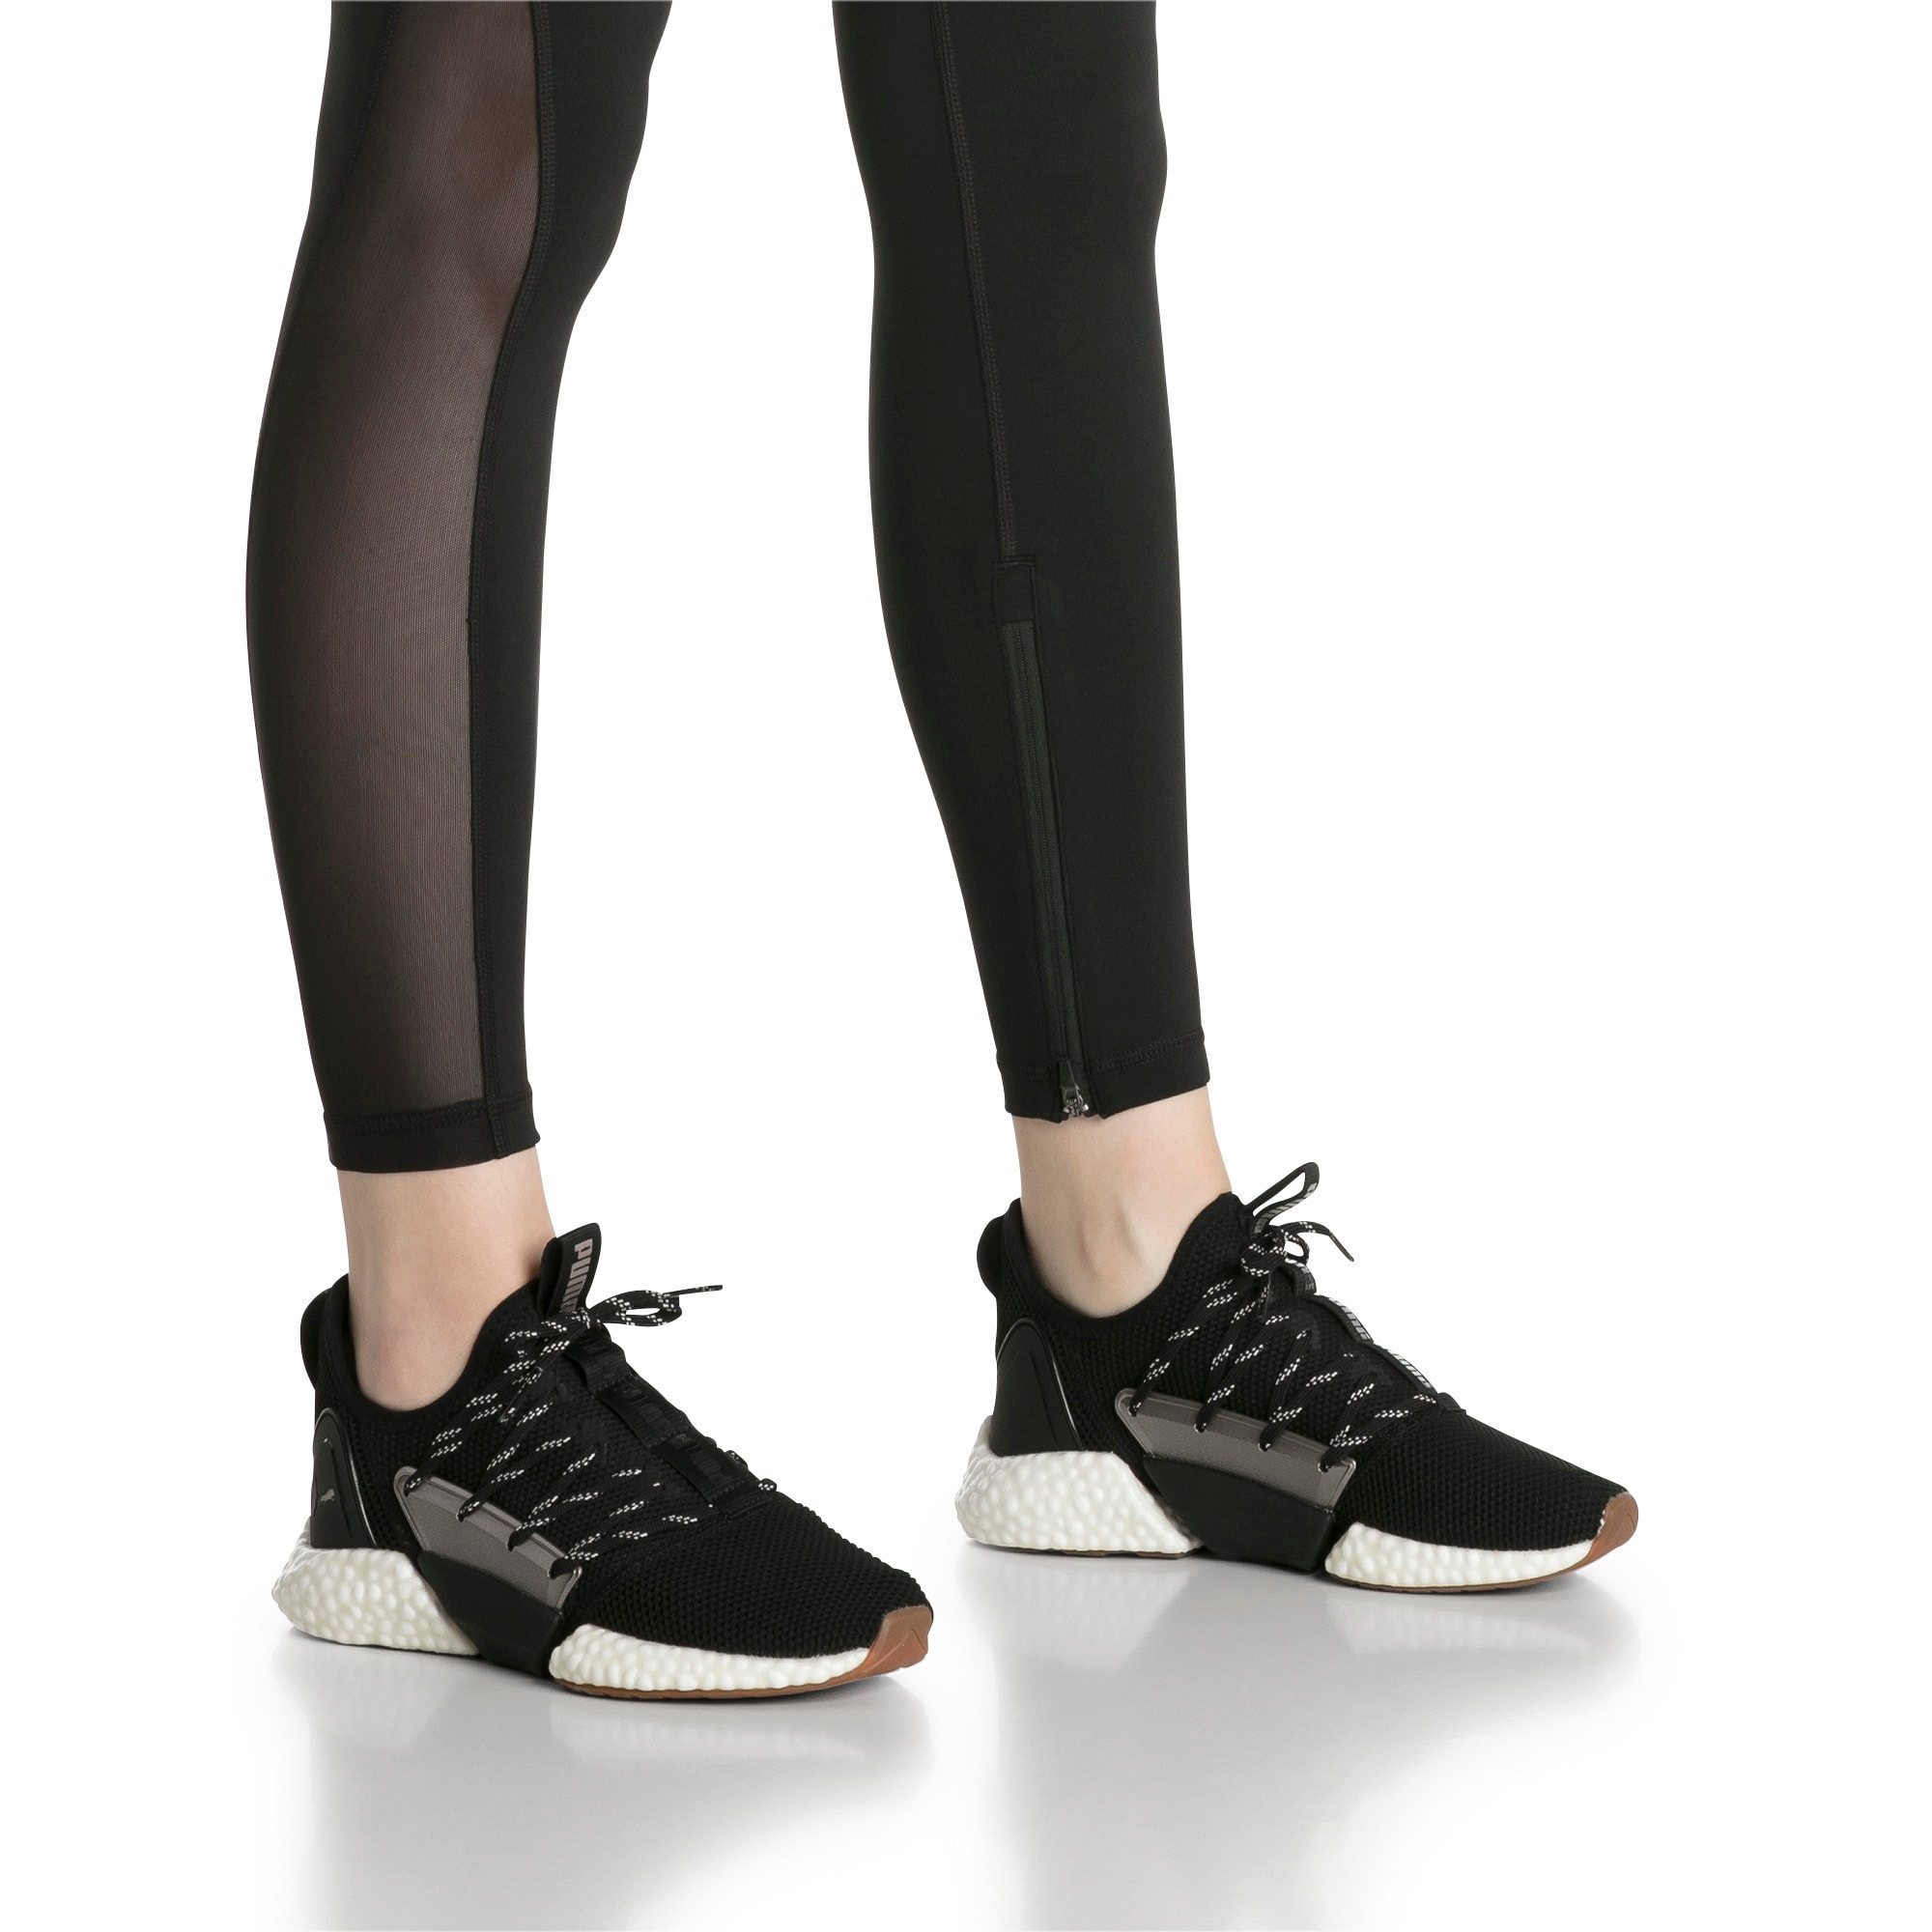 Thumbnail 8 of HYBRID Rocket Luxe Women's Running Shoes, Puma Black-Puma Black, medium